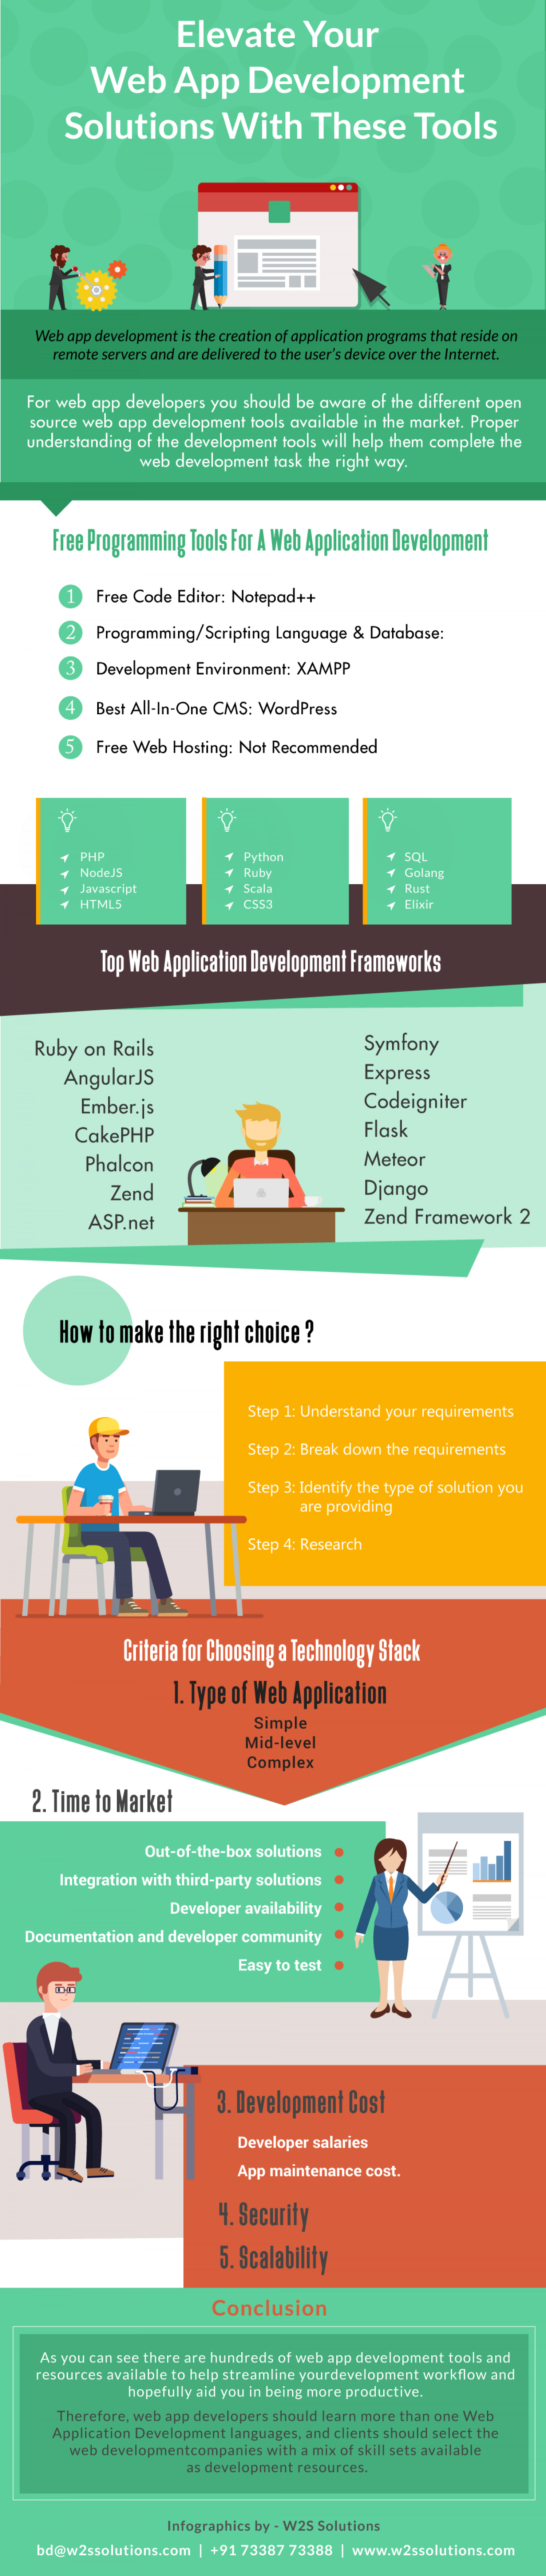 Elevate Your Web App Development Solutions With These Tools - Infographics Infographic